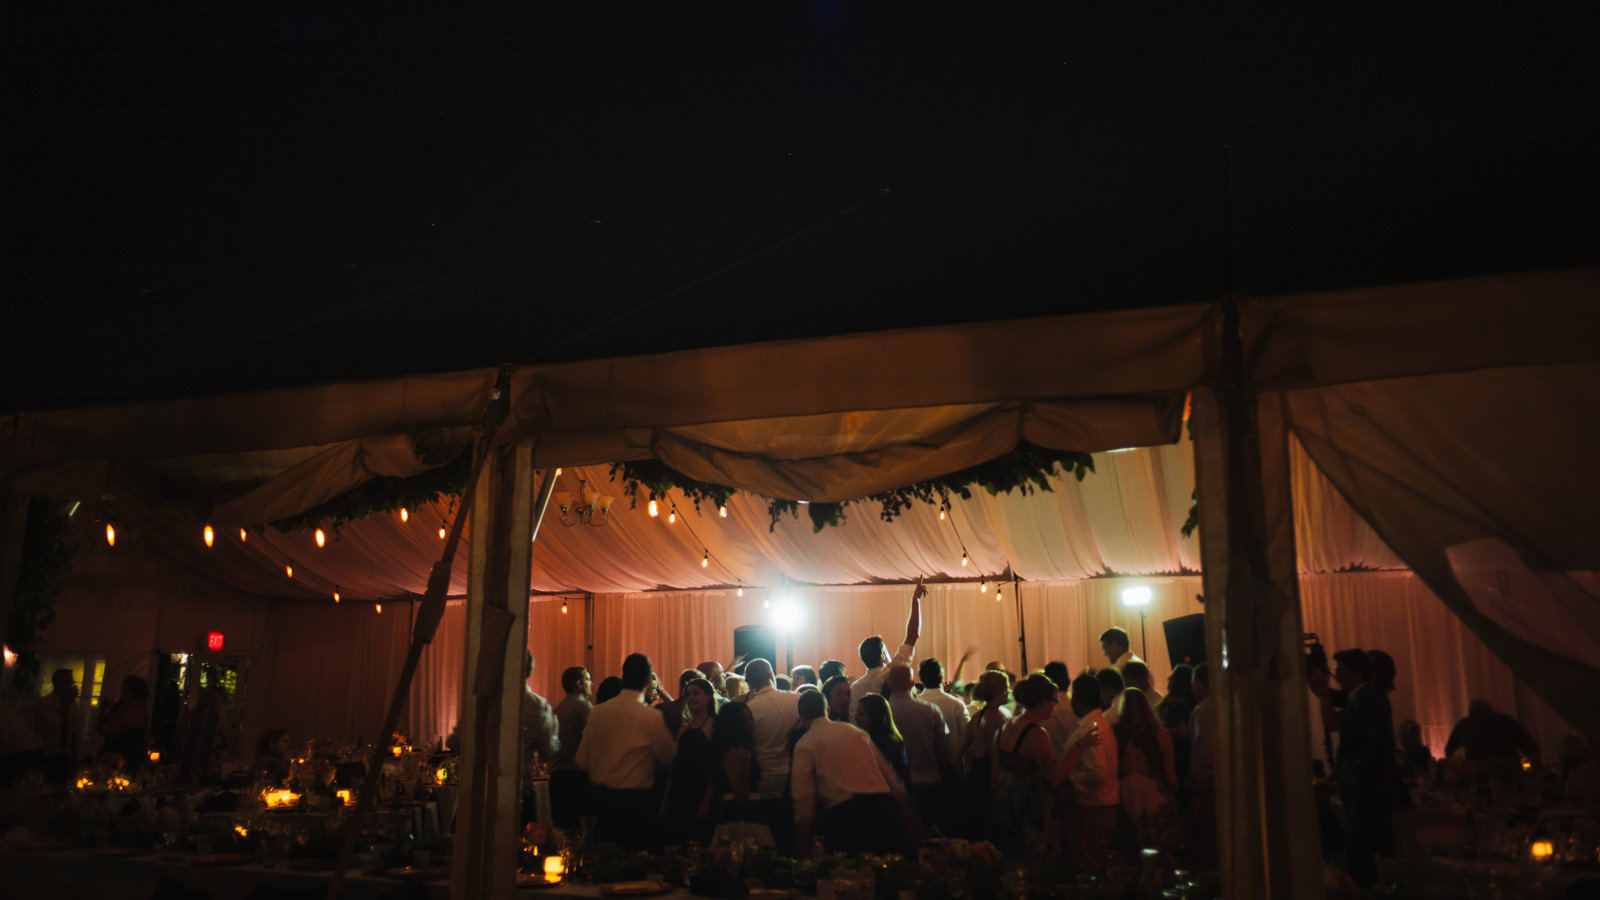 255-chambers-bay-golf-course-wedding-with-tented-reception-party.jpg